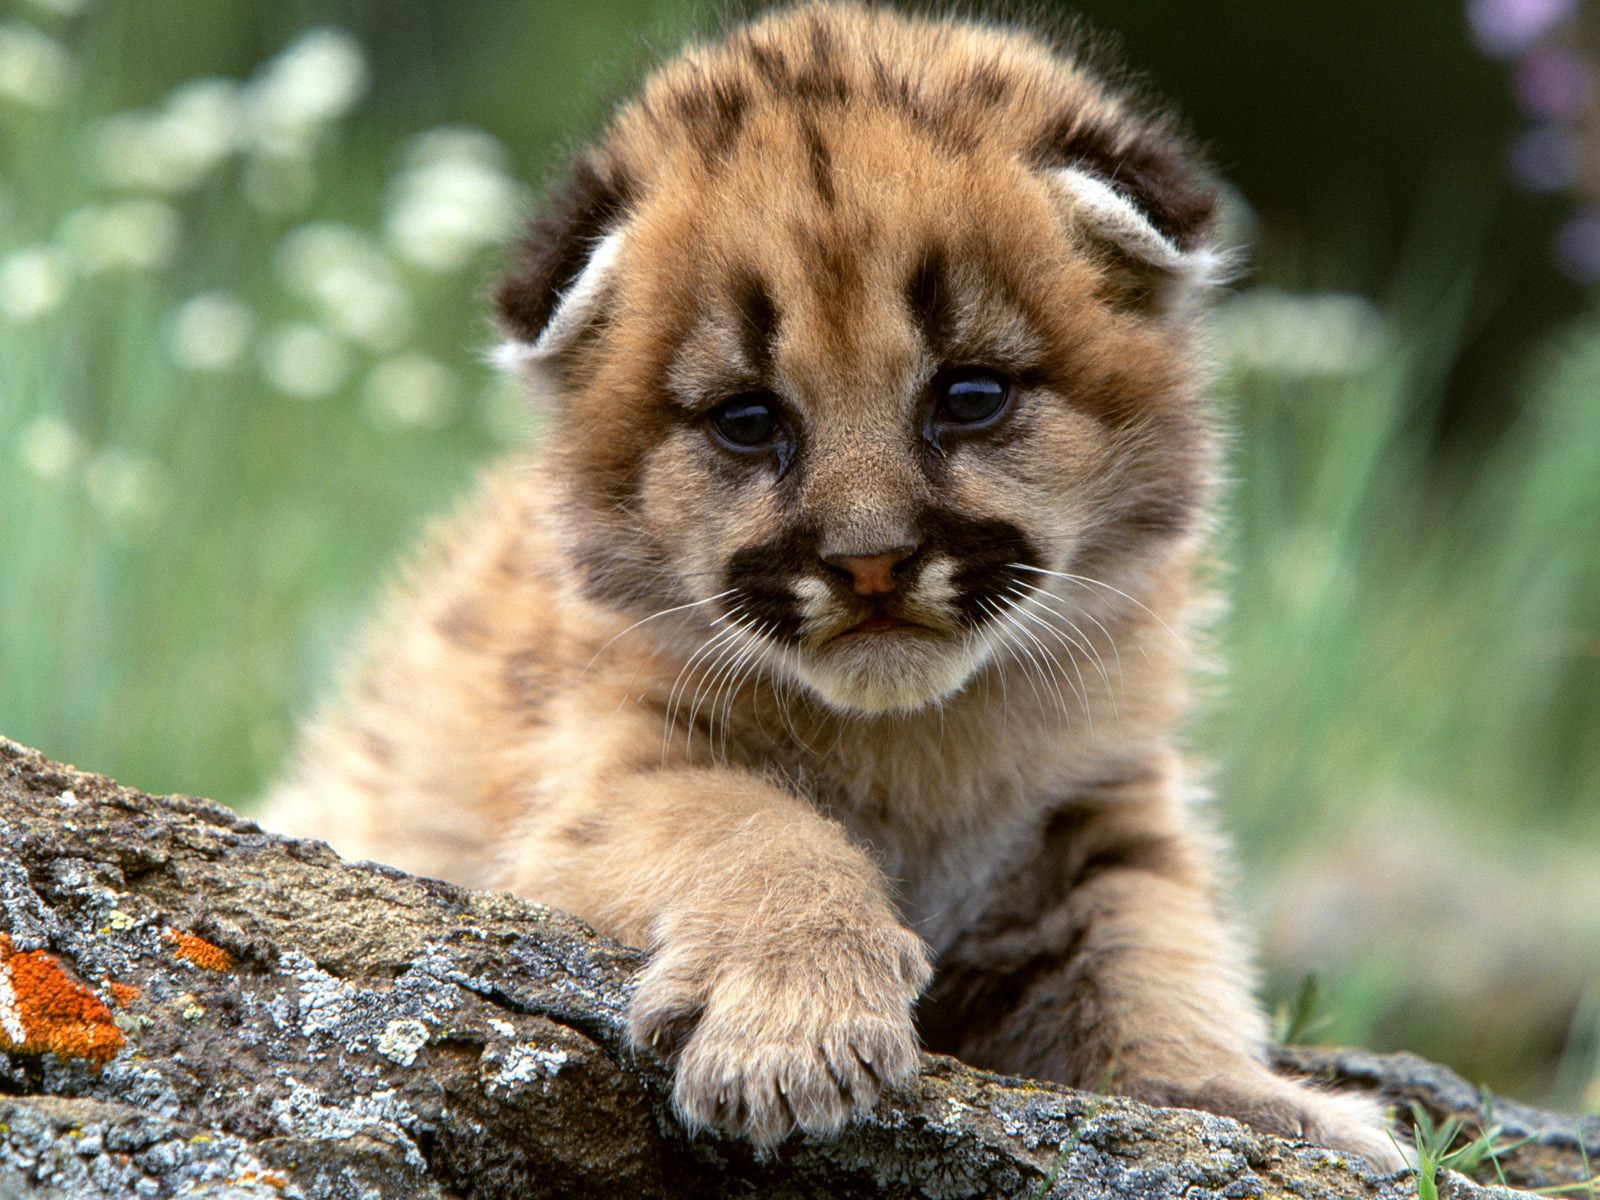 Download Baby Lions wallpaper mountain lion cub 1600x1200